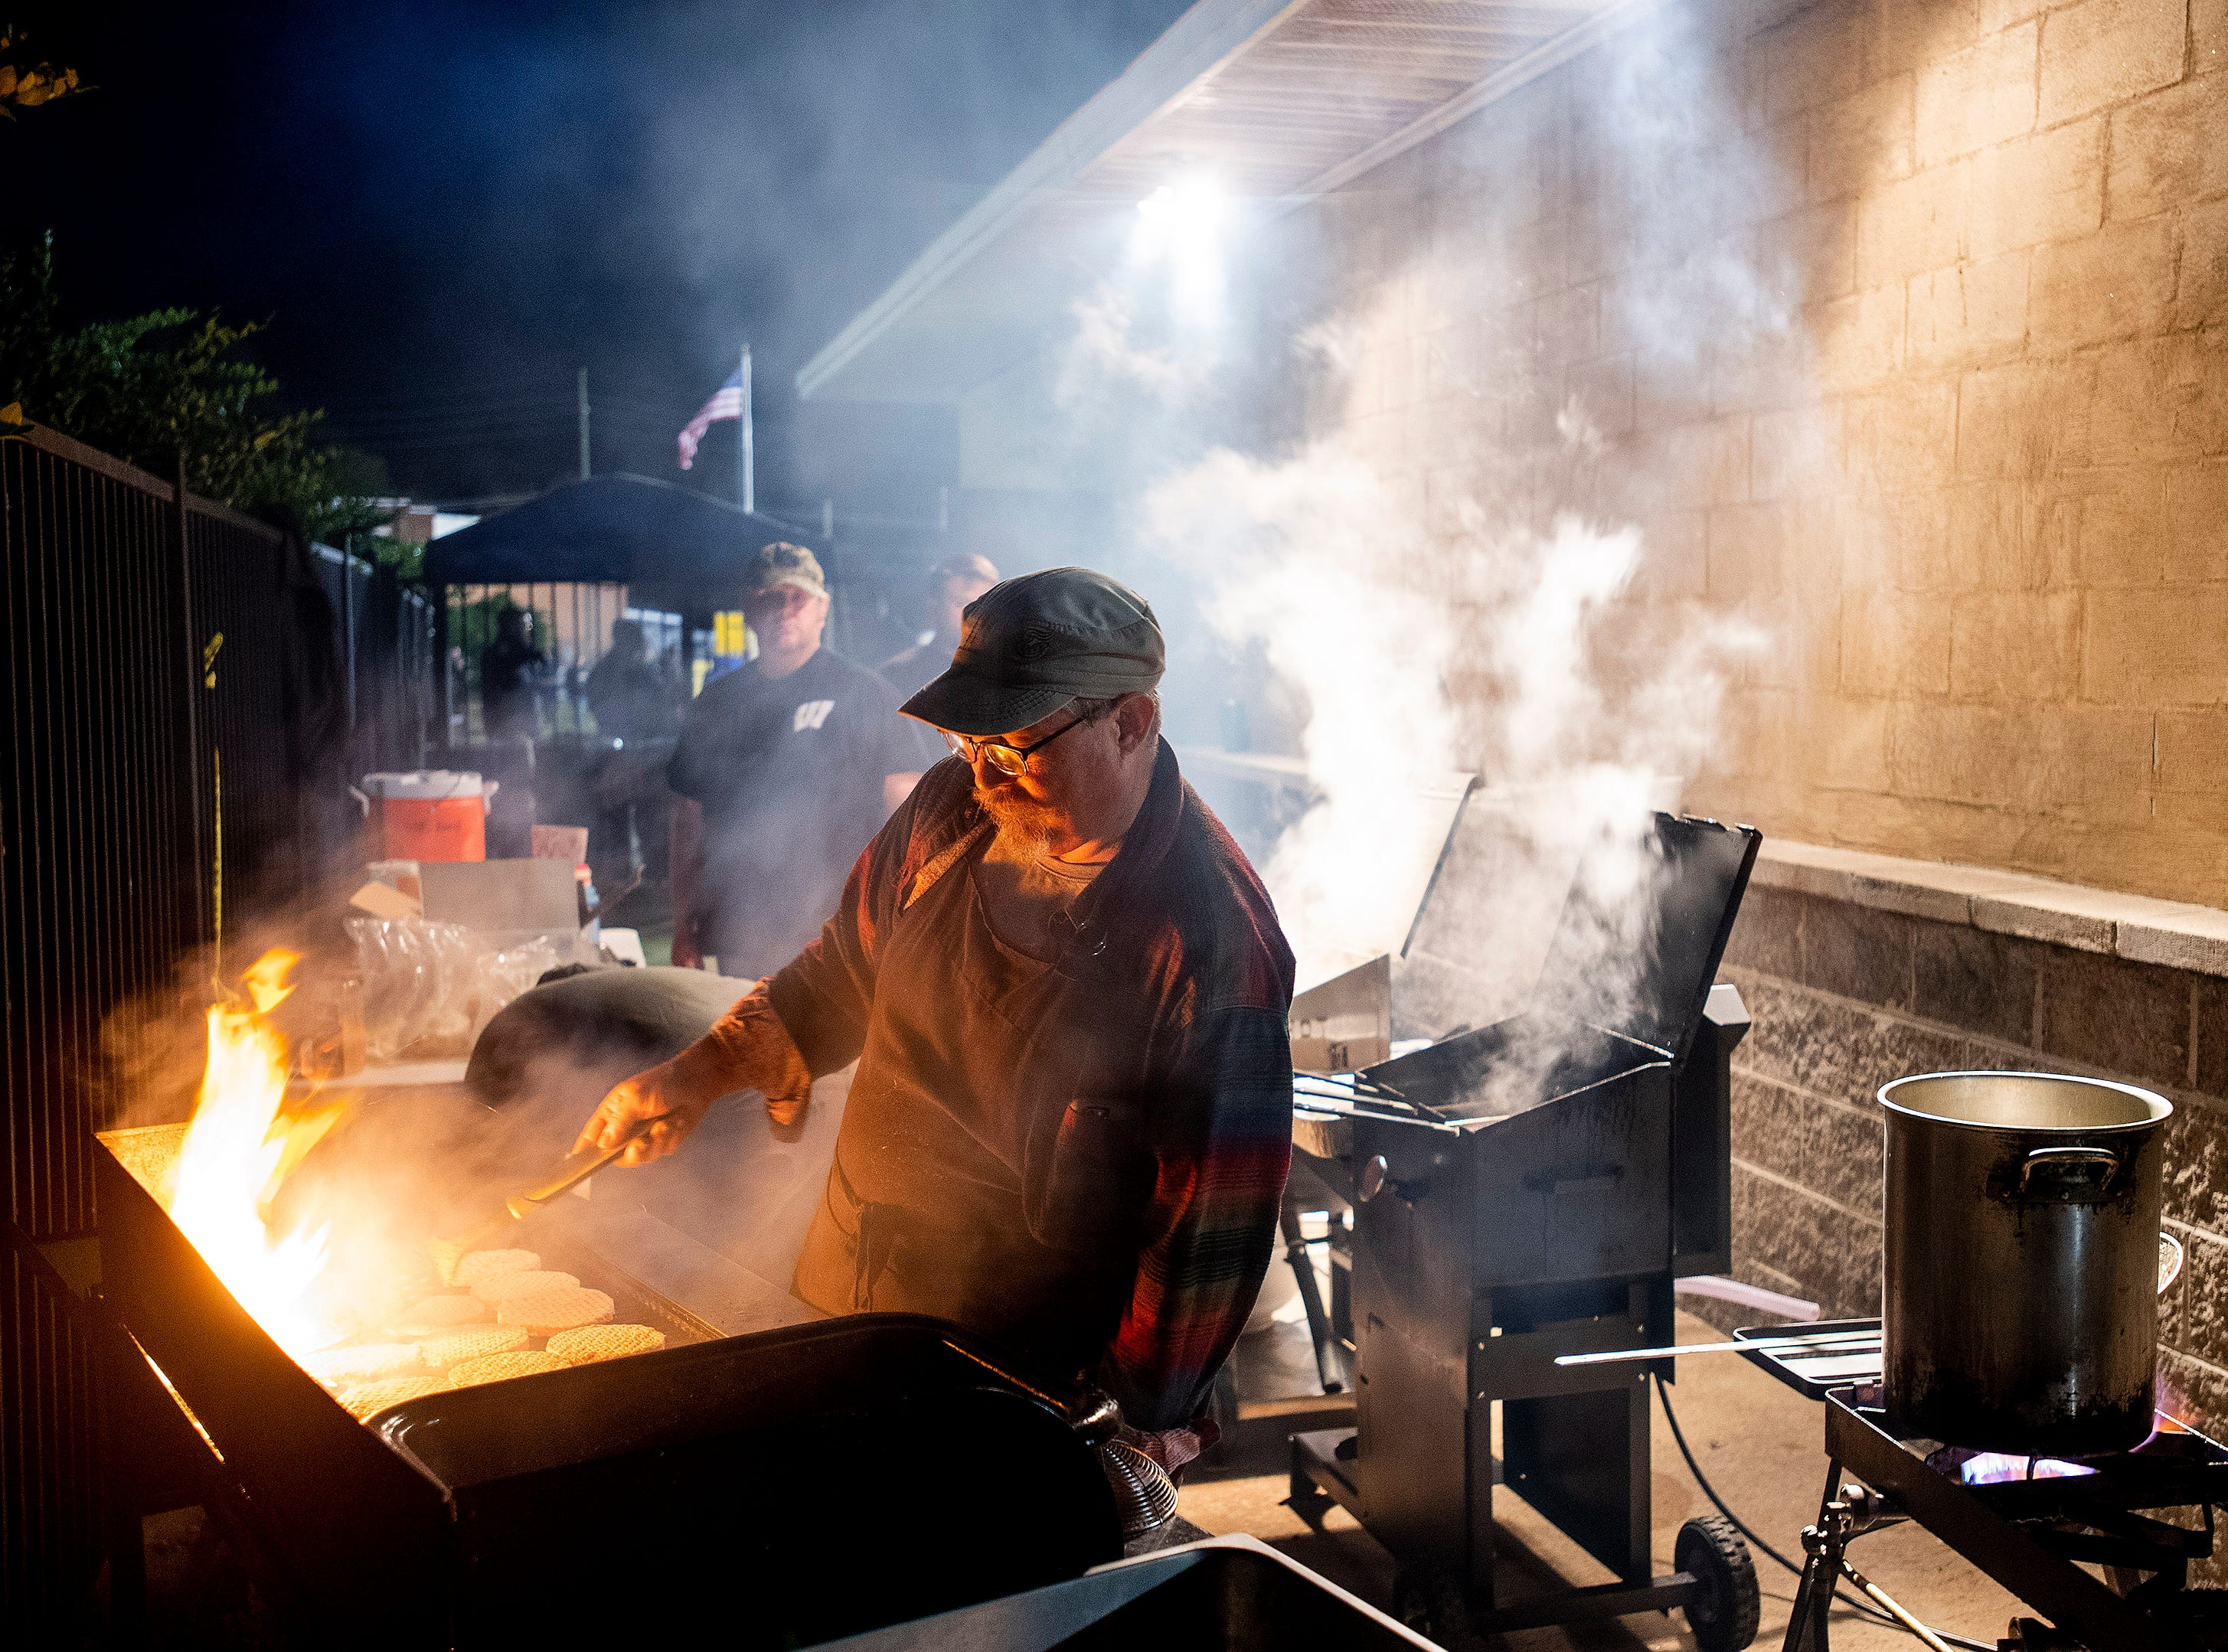 Grilling hamburgers for the concession stand at the Wetumpka vs. Daphne game at Hohenburg Field in Wetumpka, Ala., on Friday November 9, 2018.